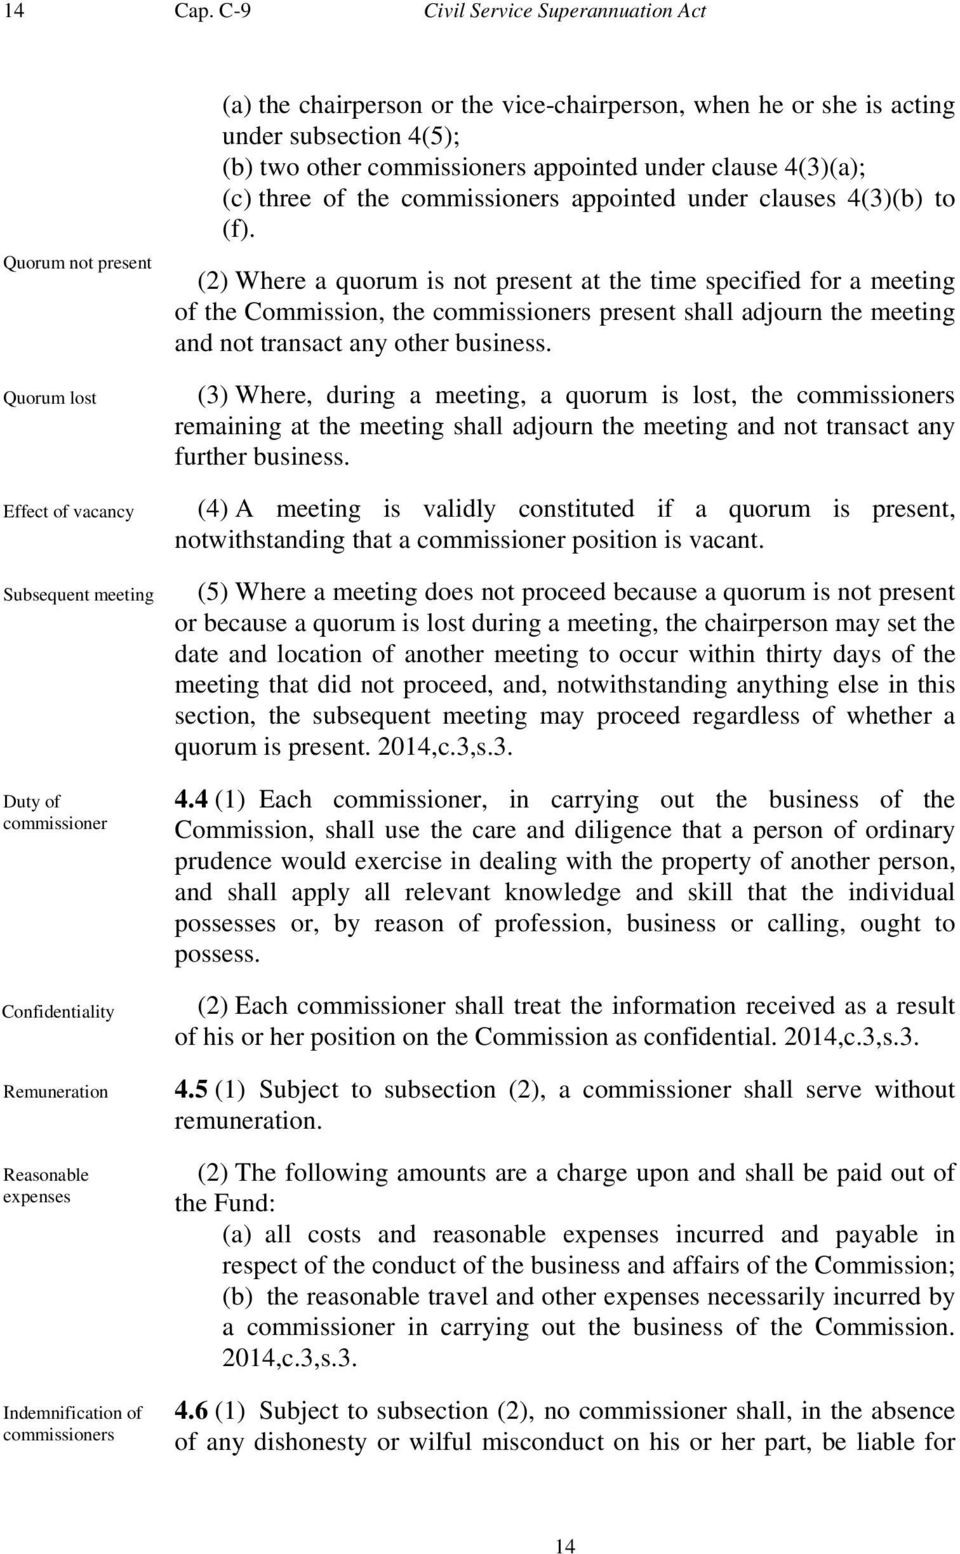 commissioners (a) the chairperson or the vice-chairperson, when he or she is acting under subsection 4(5); (b) two other commissioners appointed under clause 4(3)(a); (c) three of the commissioners